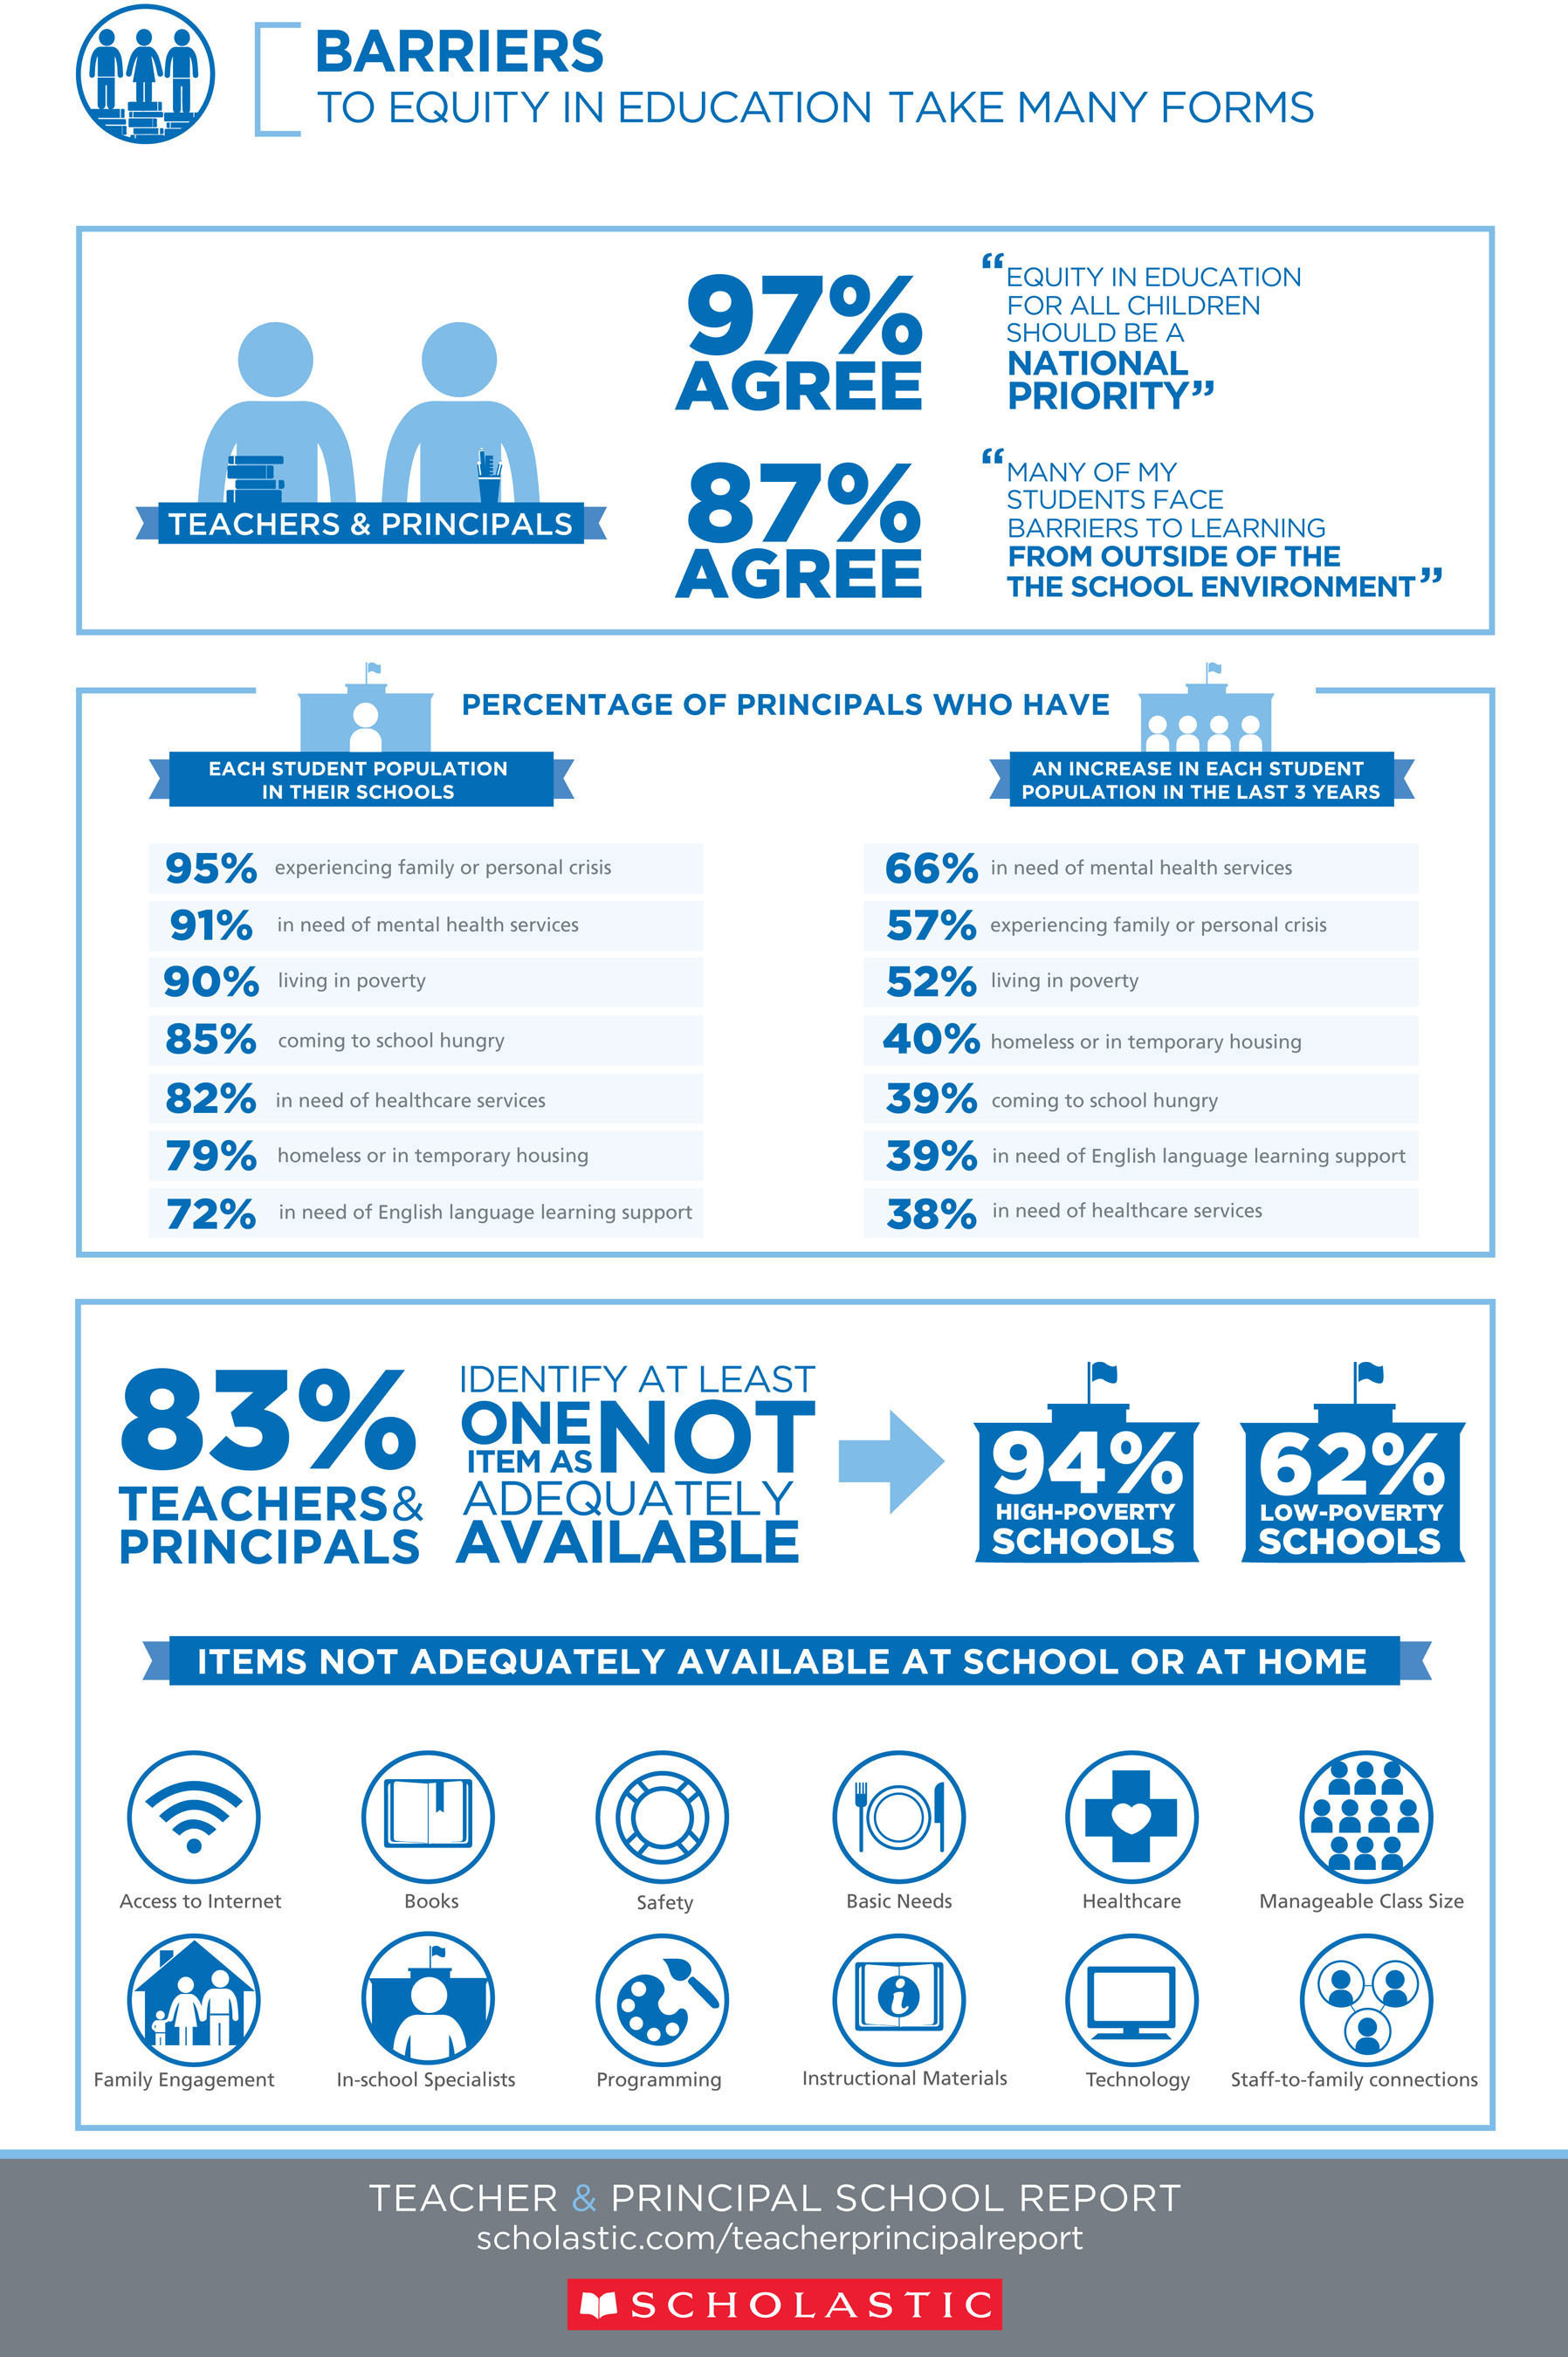 Infographic: Barriers to Equity in Education Take Many Forms. To download the full Scholastic Teacher & Principal School Report: Equity in Education, visit www.scholastic.com/teacherprincipalreport.